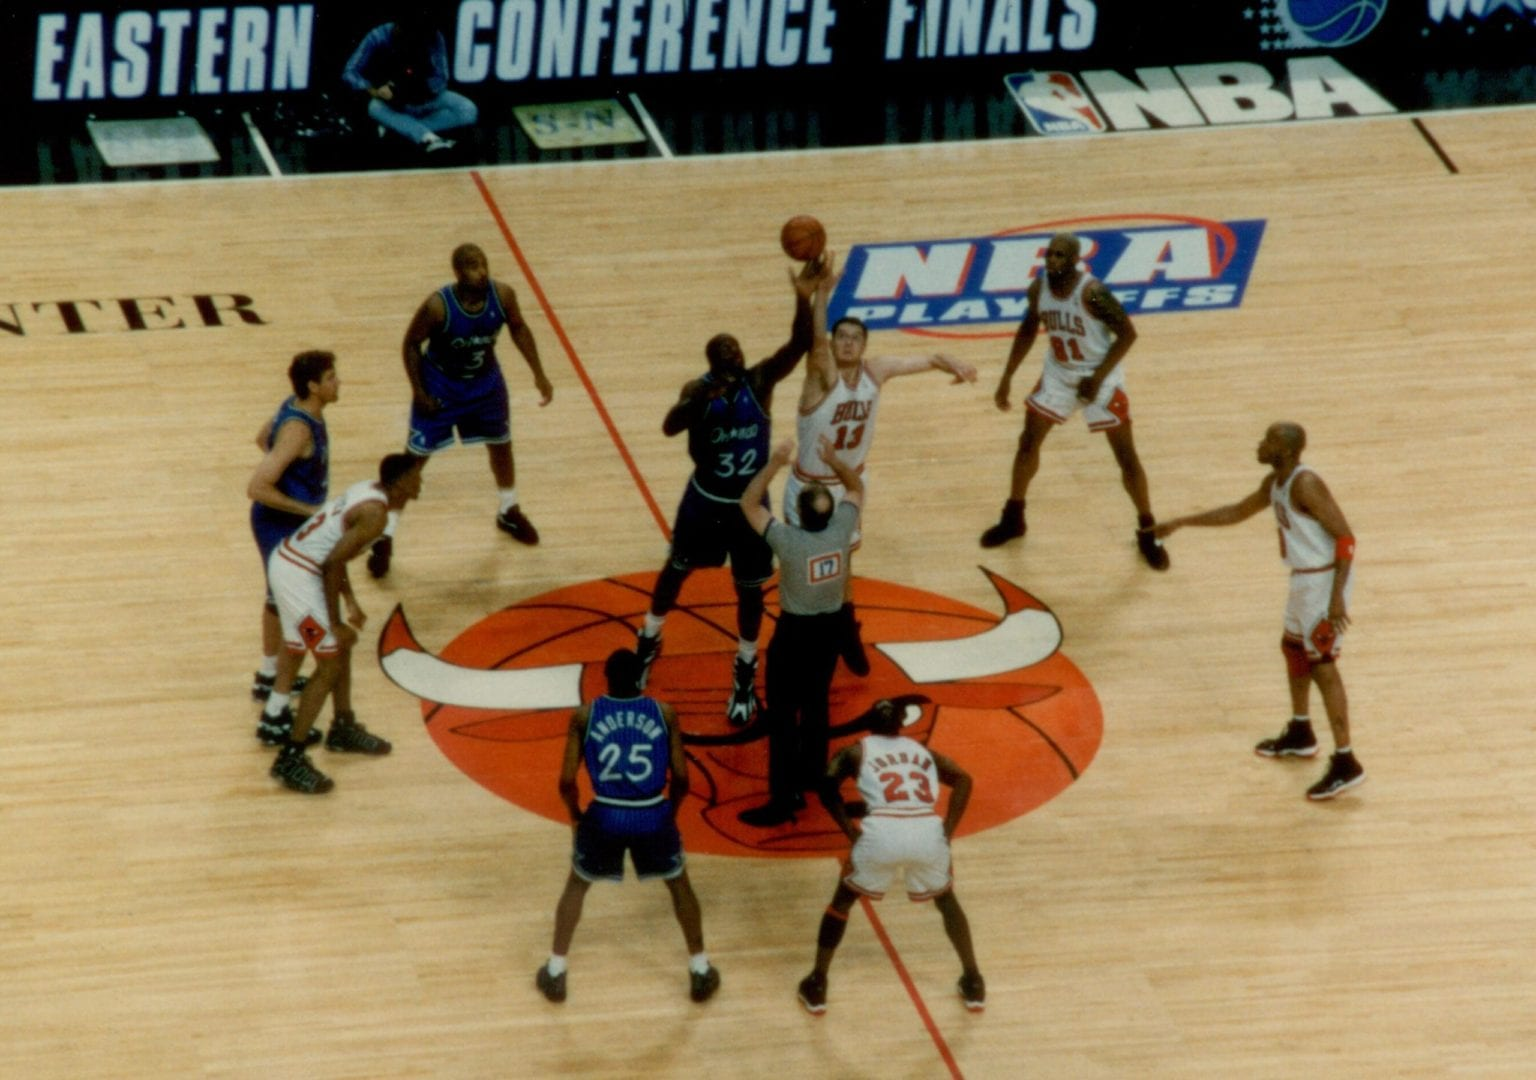 Bulls and Magic opening tip off